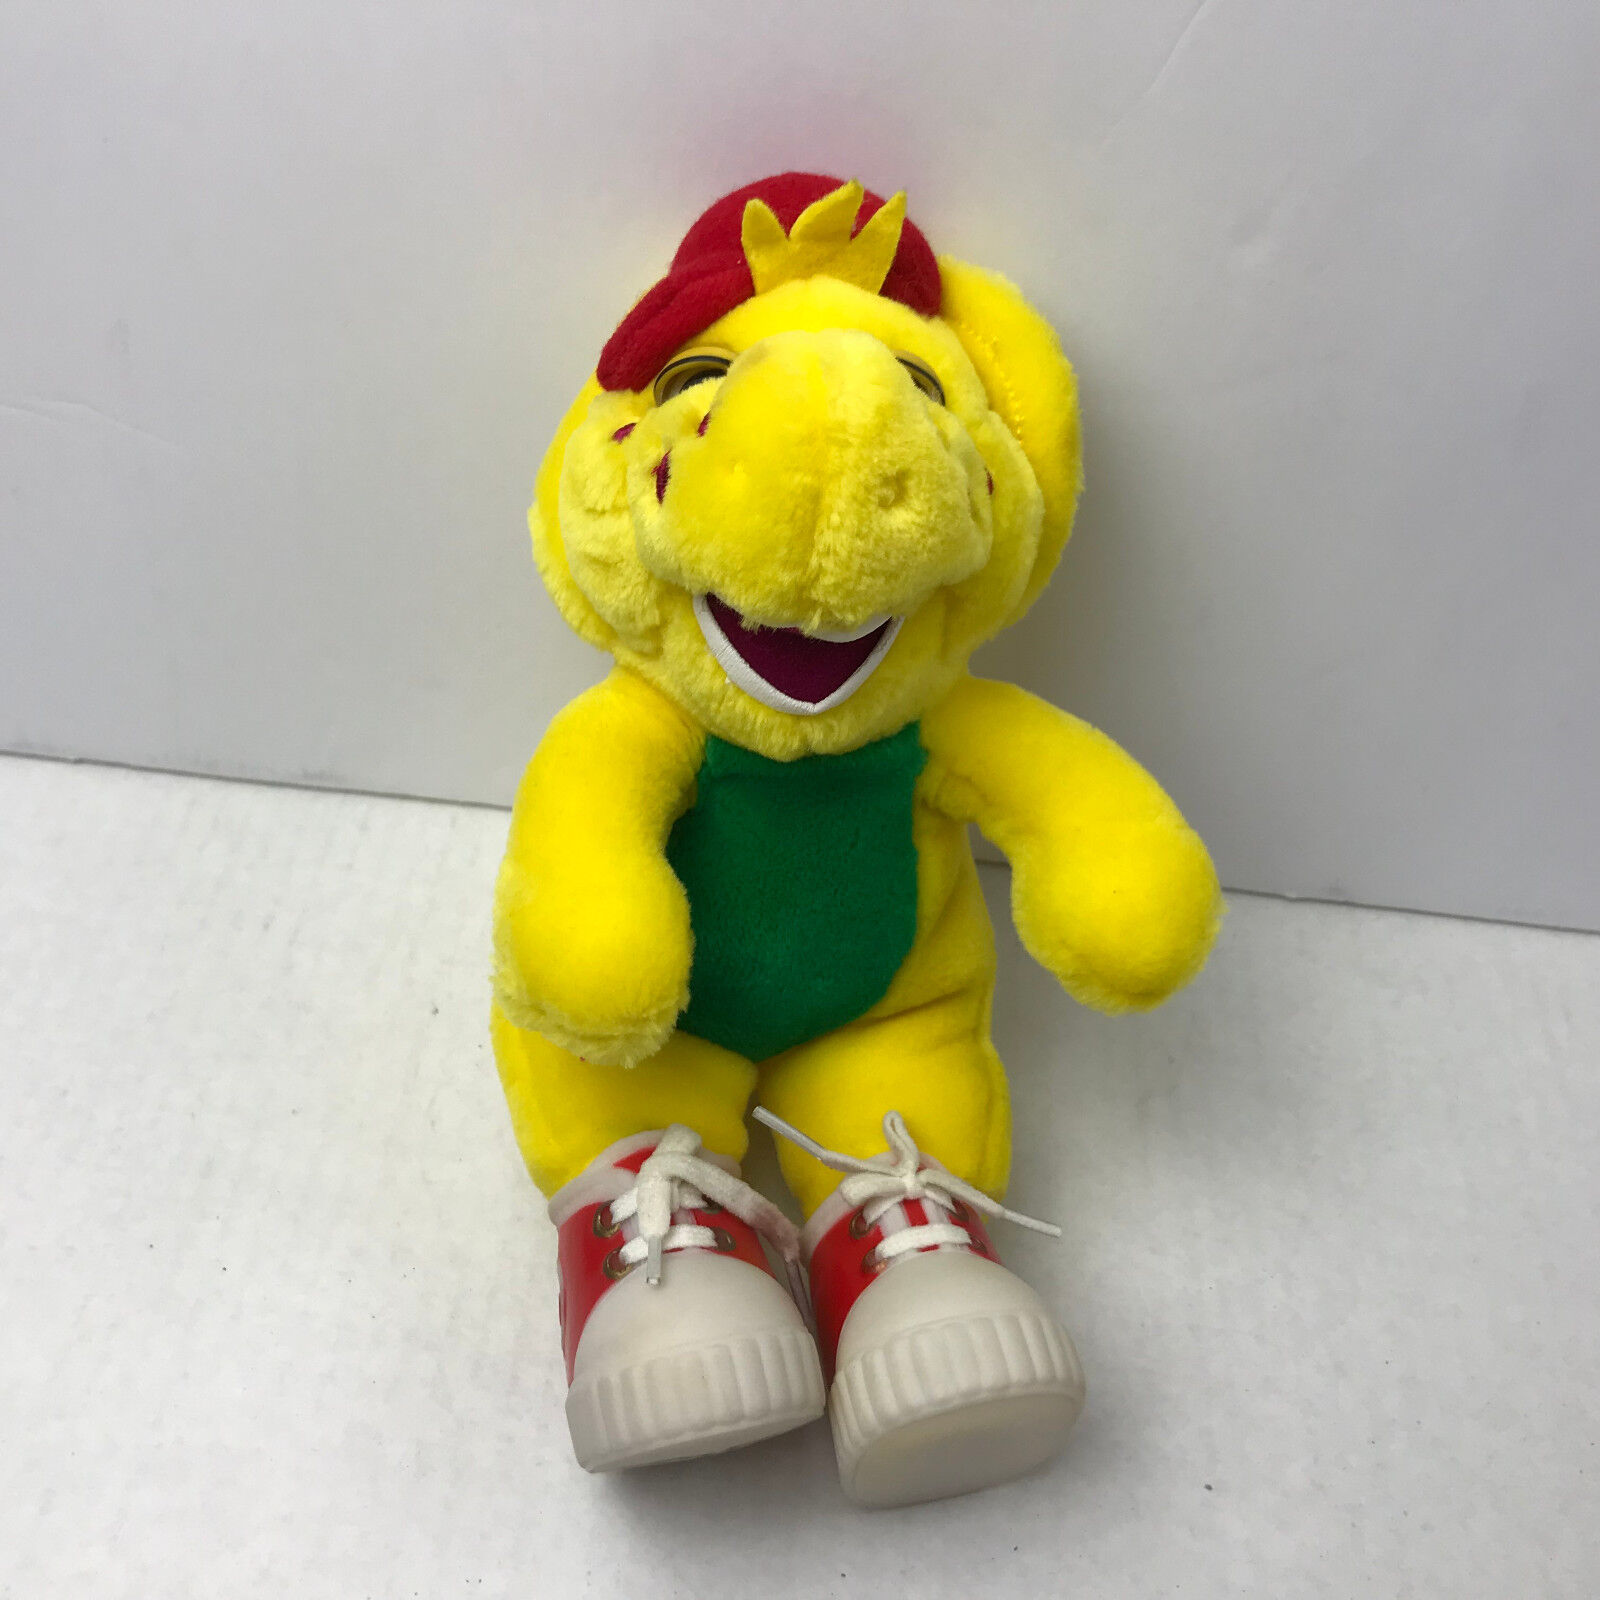 BJ the Dinosaur Yellow Plush 9.5  Toy Vinyl Red shoes Friend of Barney 1994 Tag